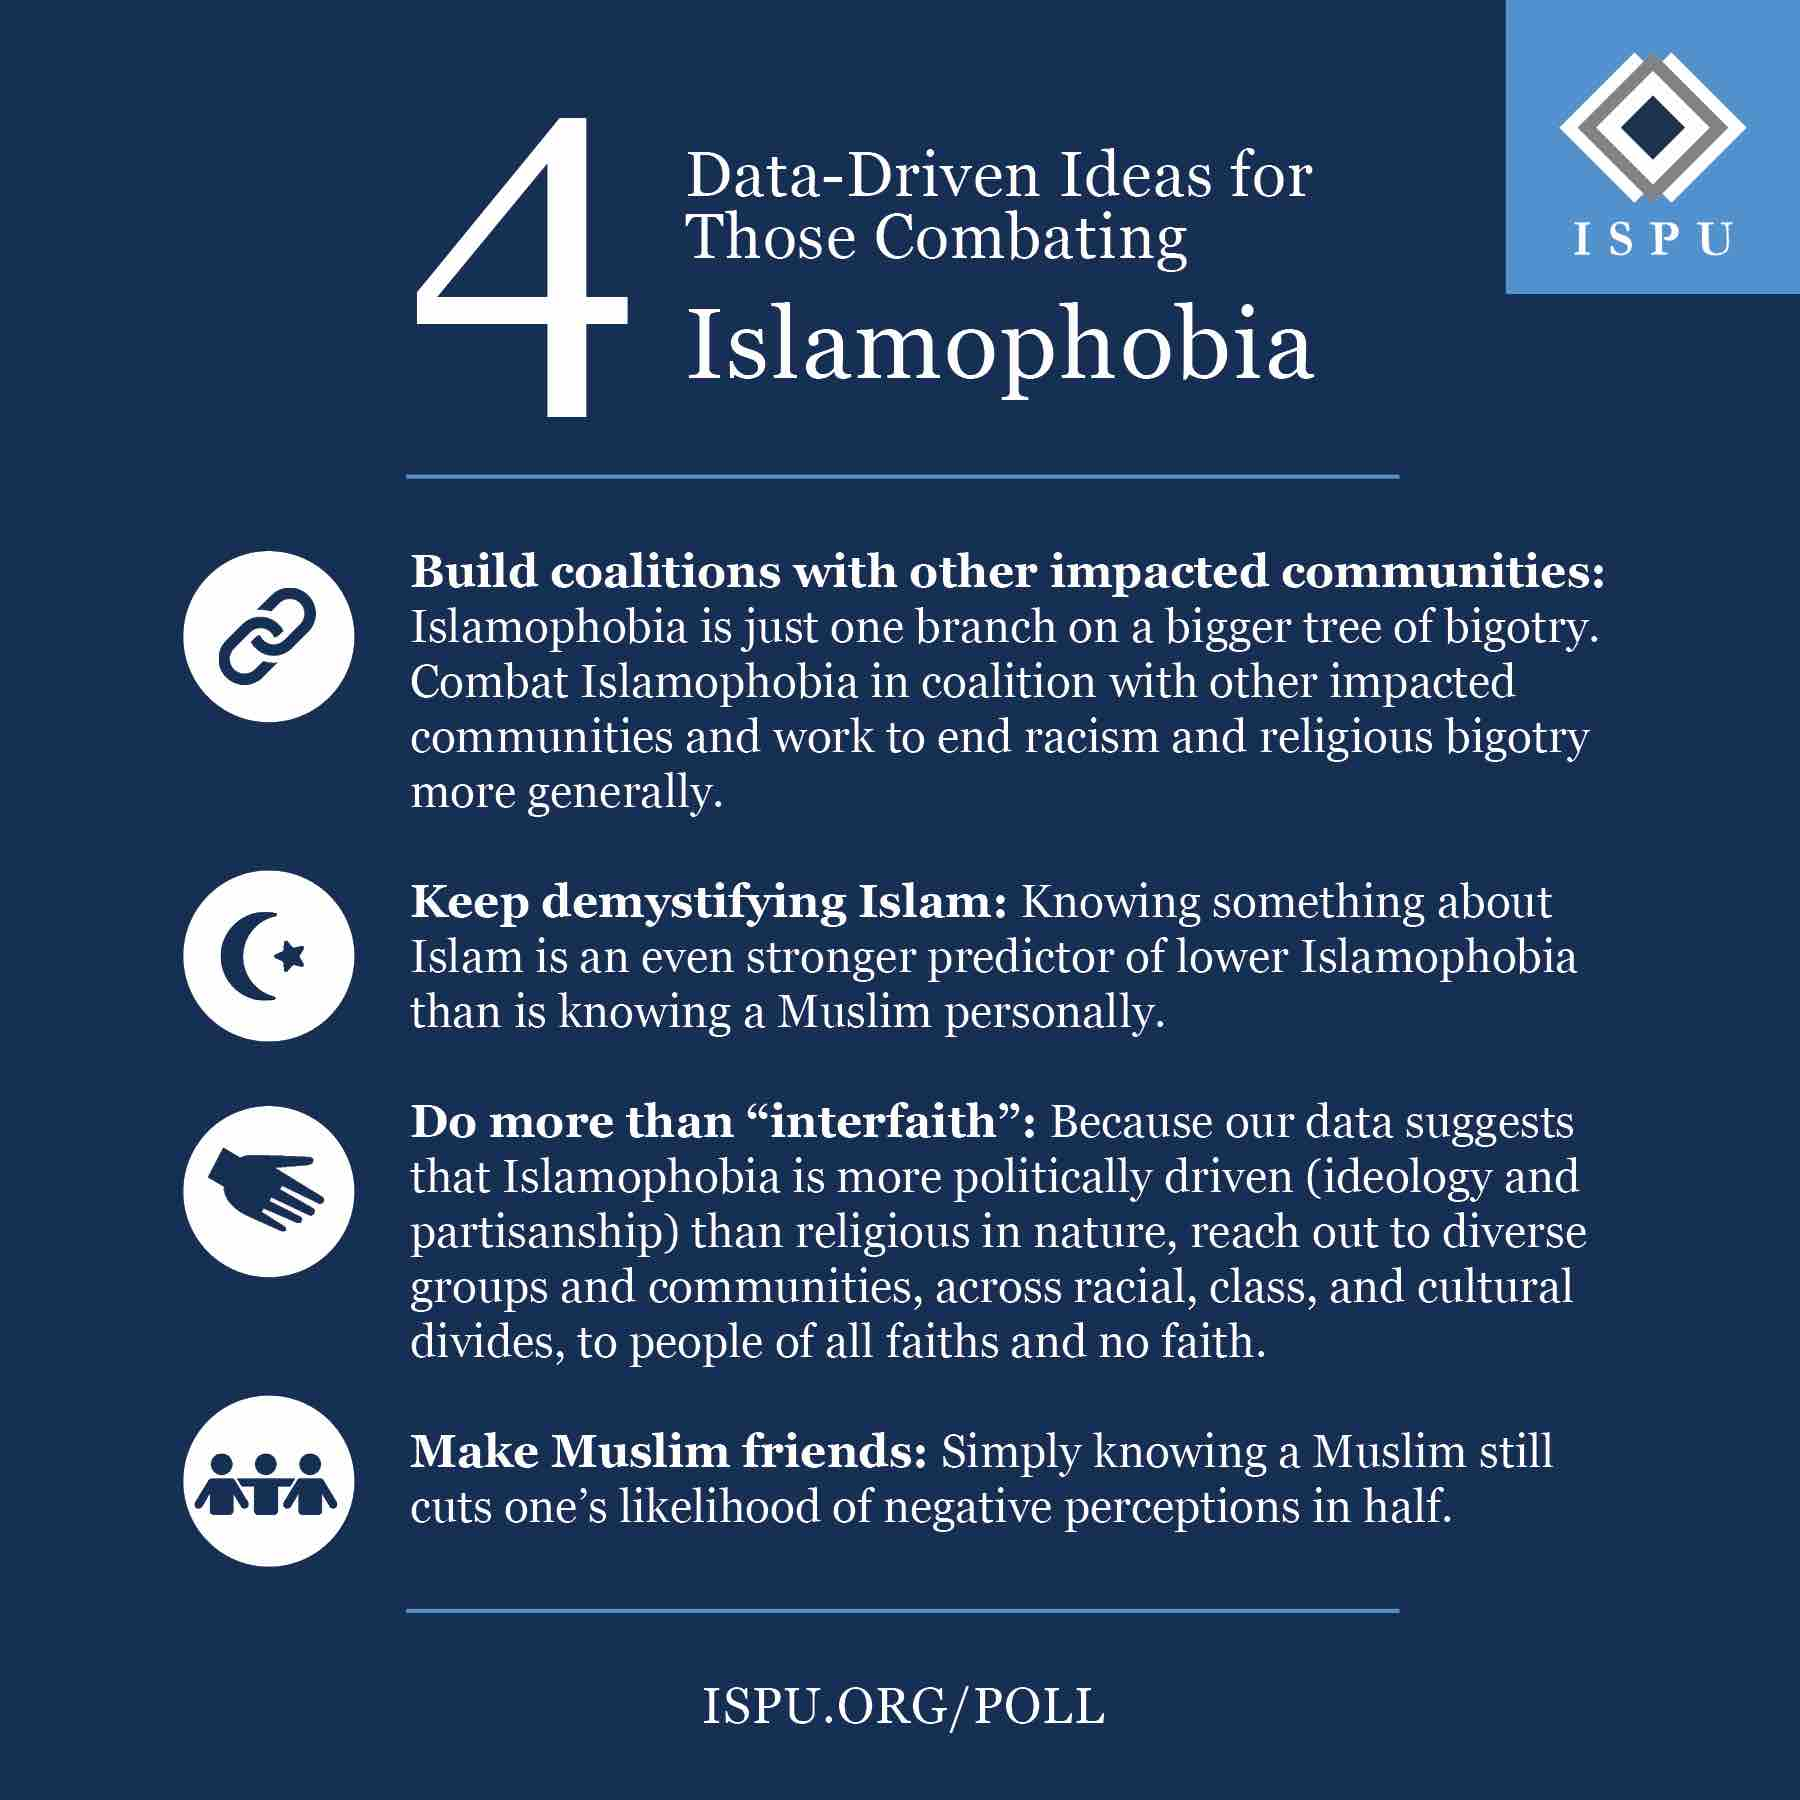 4 data-driven ideas for those combating Islamophobia graphic